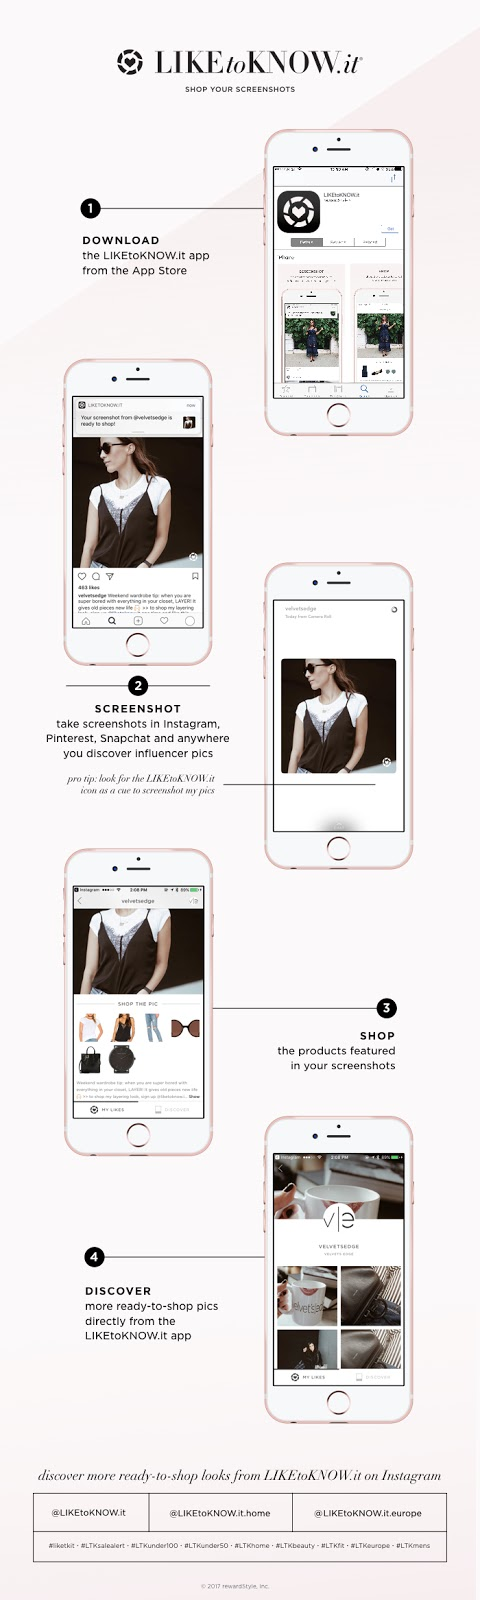 The Process Your Followers Use to Screenshot LIKEtoKNOW.it Images| How to Make Your First $100 on LIKEtoKNOW.it as an Influencer | Affordable by Amanda |